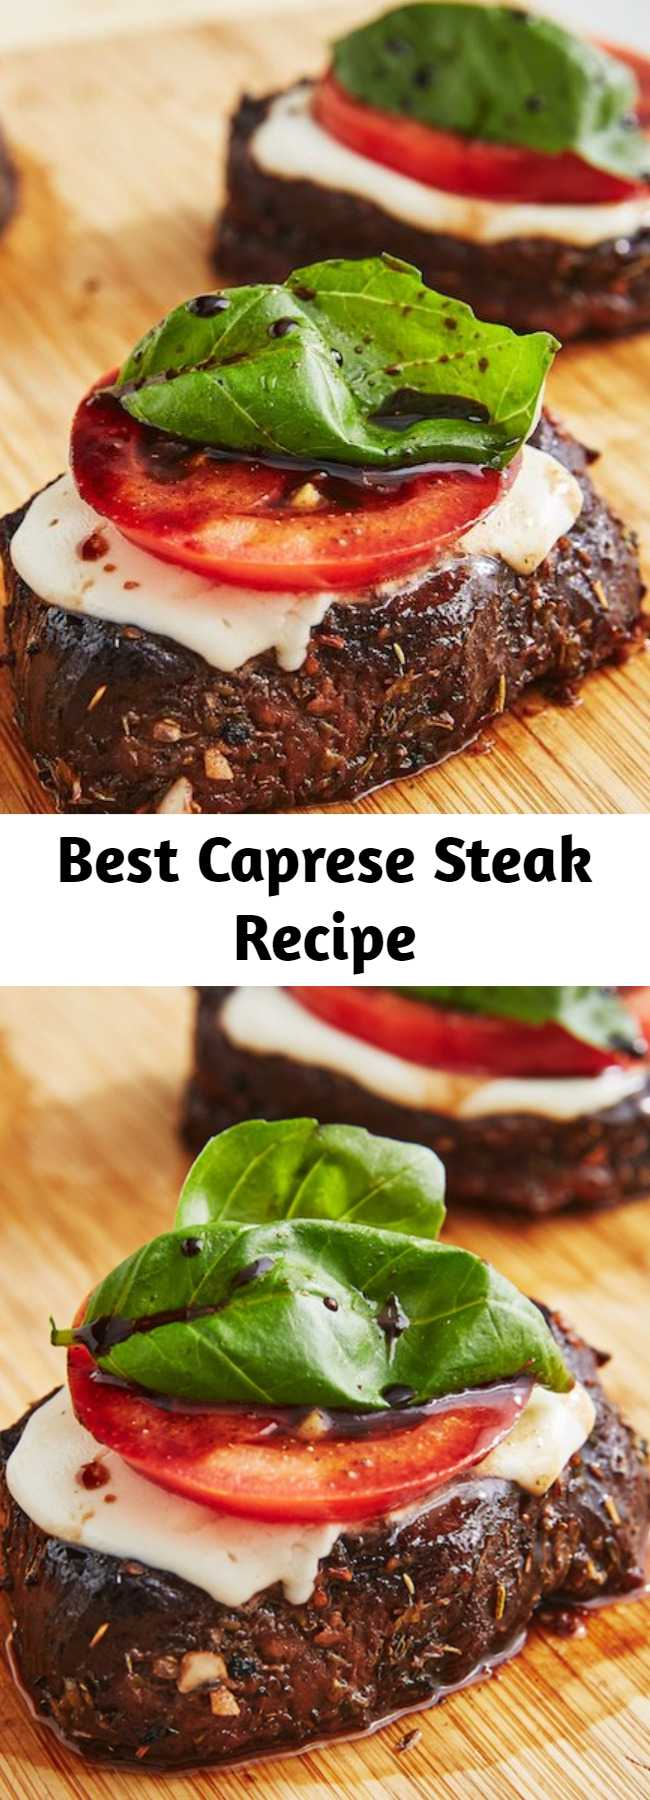 Best Caprese Steak Recipe - Looking for a caprese recipe? This Caprese Steak is amazing. Is making us totally capr-azy!